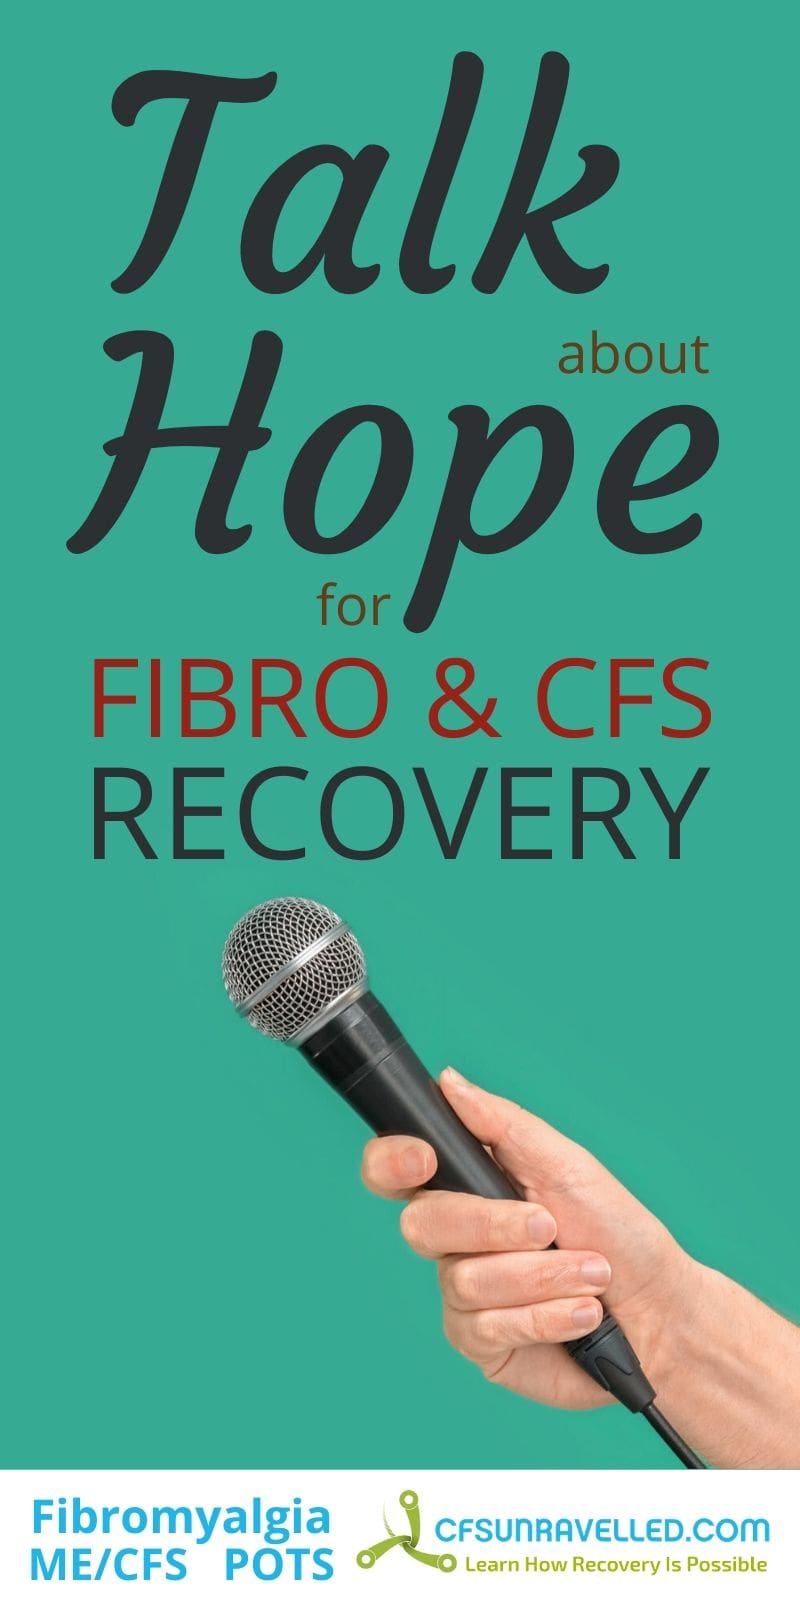 Person holding a microphone with text about talk about hope for fibromyalgia anf CFS recovery